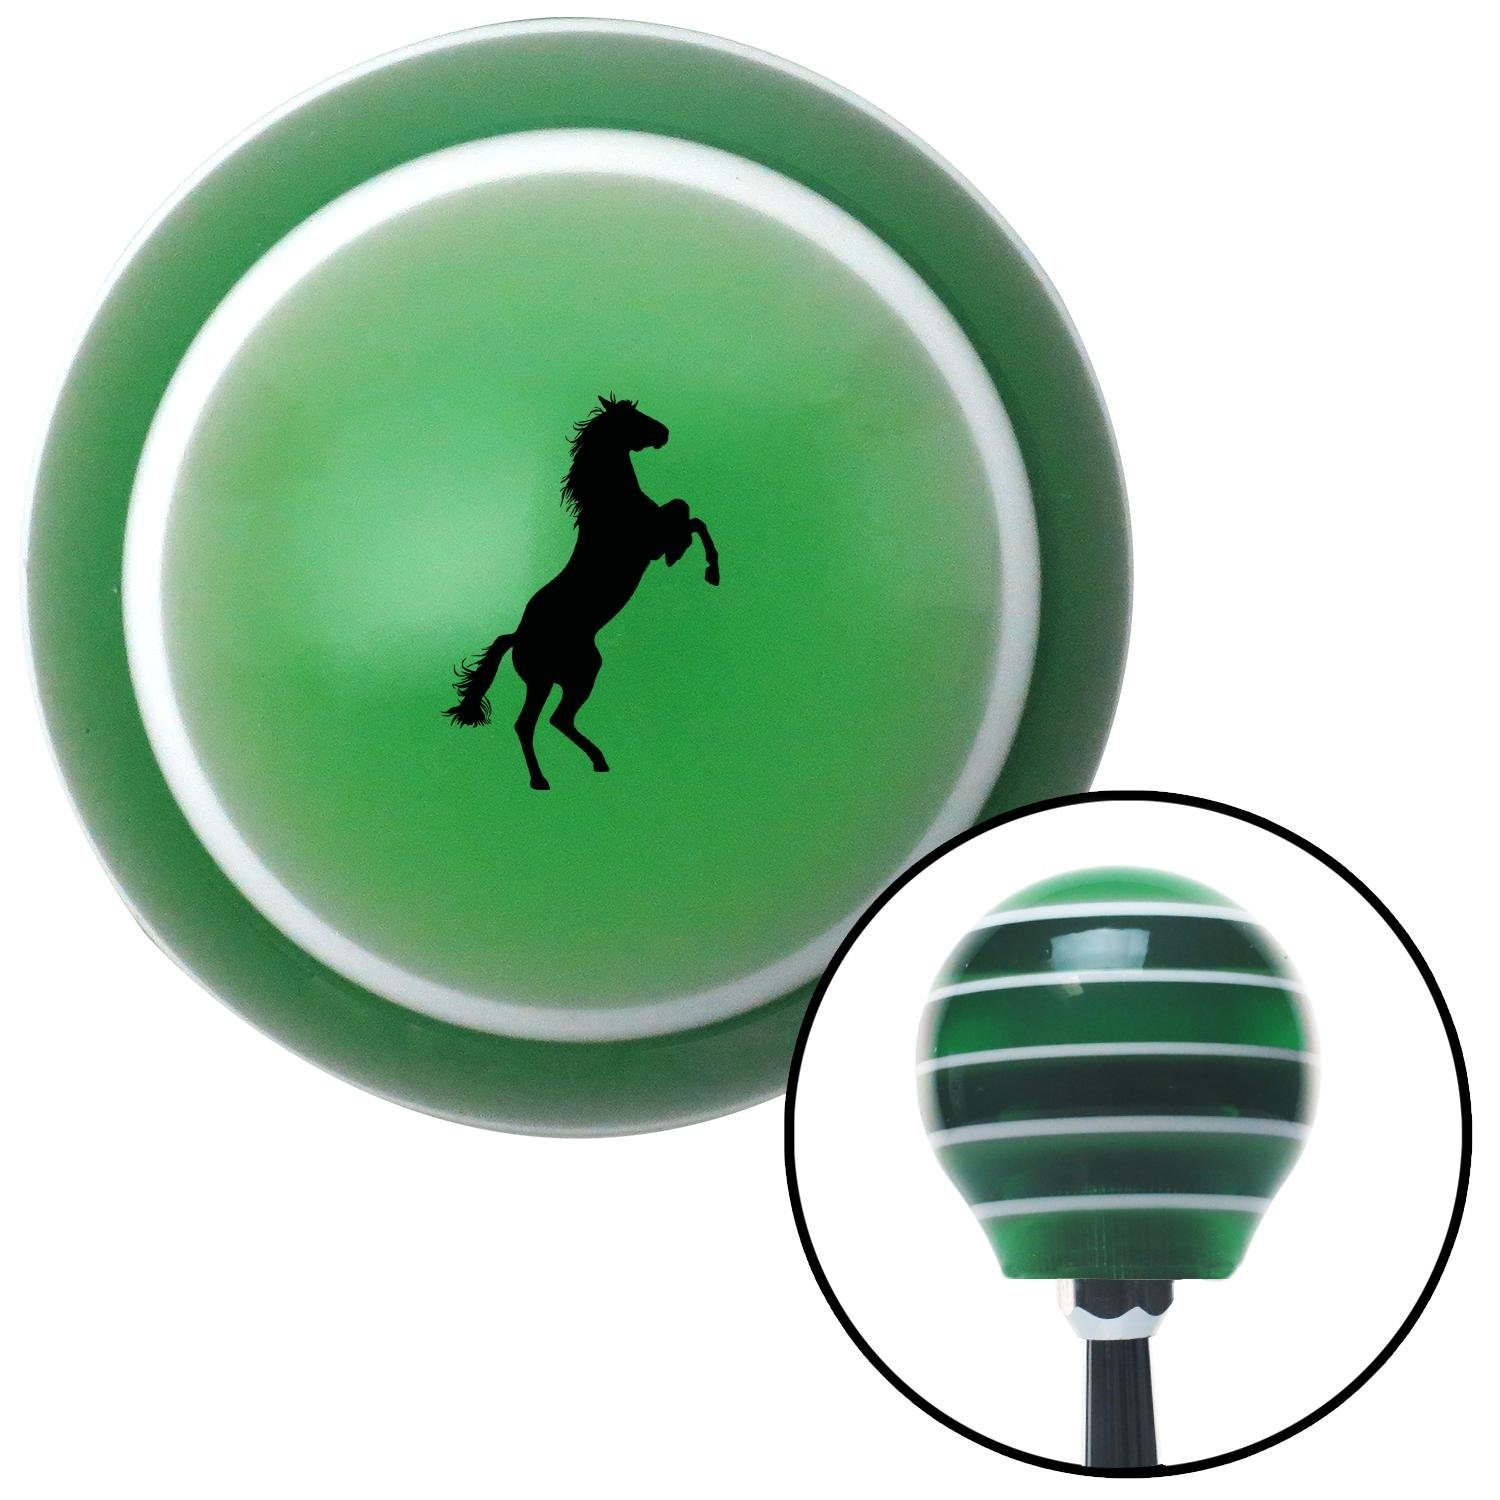 American Shifter 274807 Shift Knob Black Horse Rearing Green Stripe with M16 x 1.5 Insert